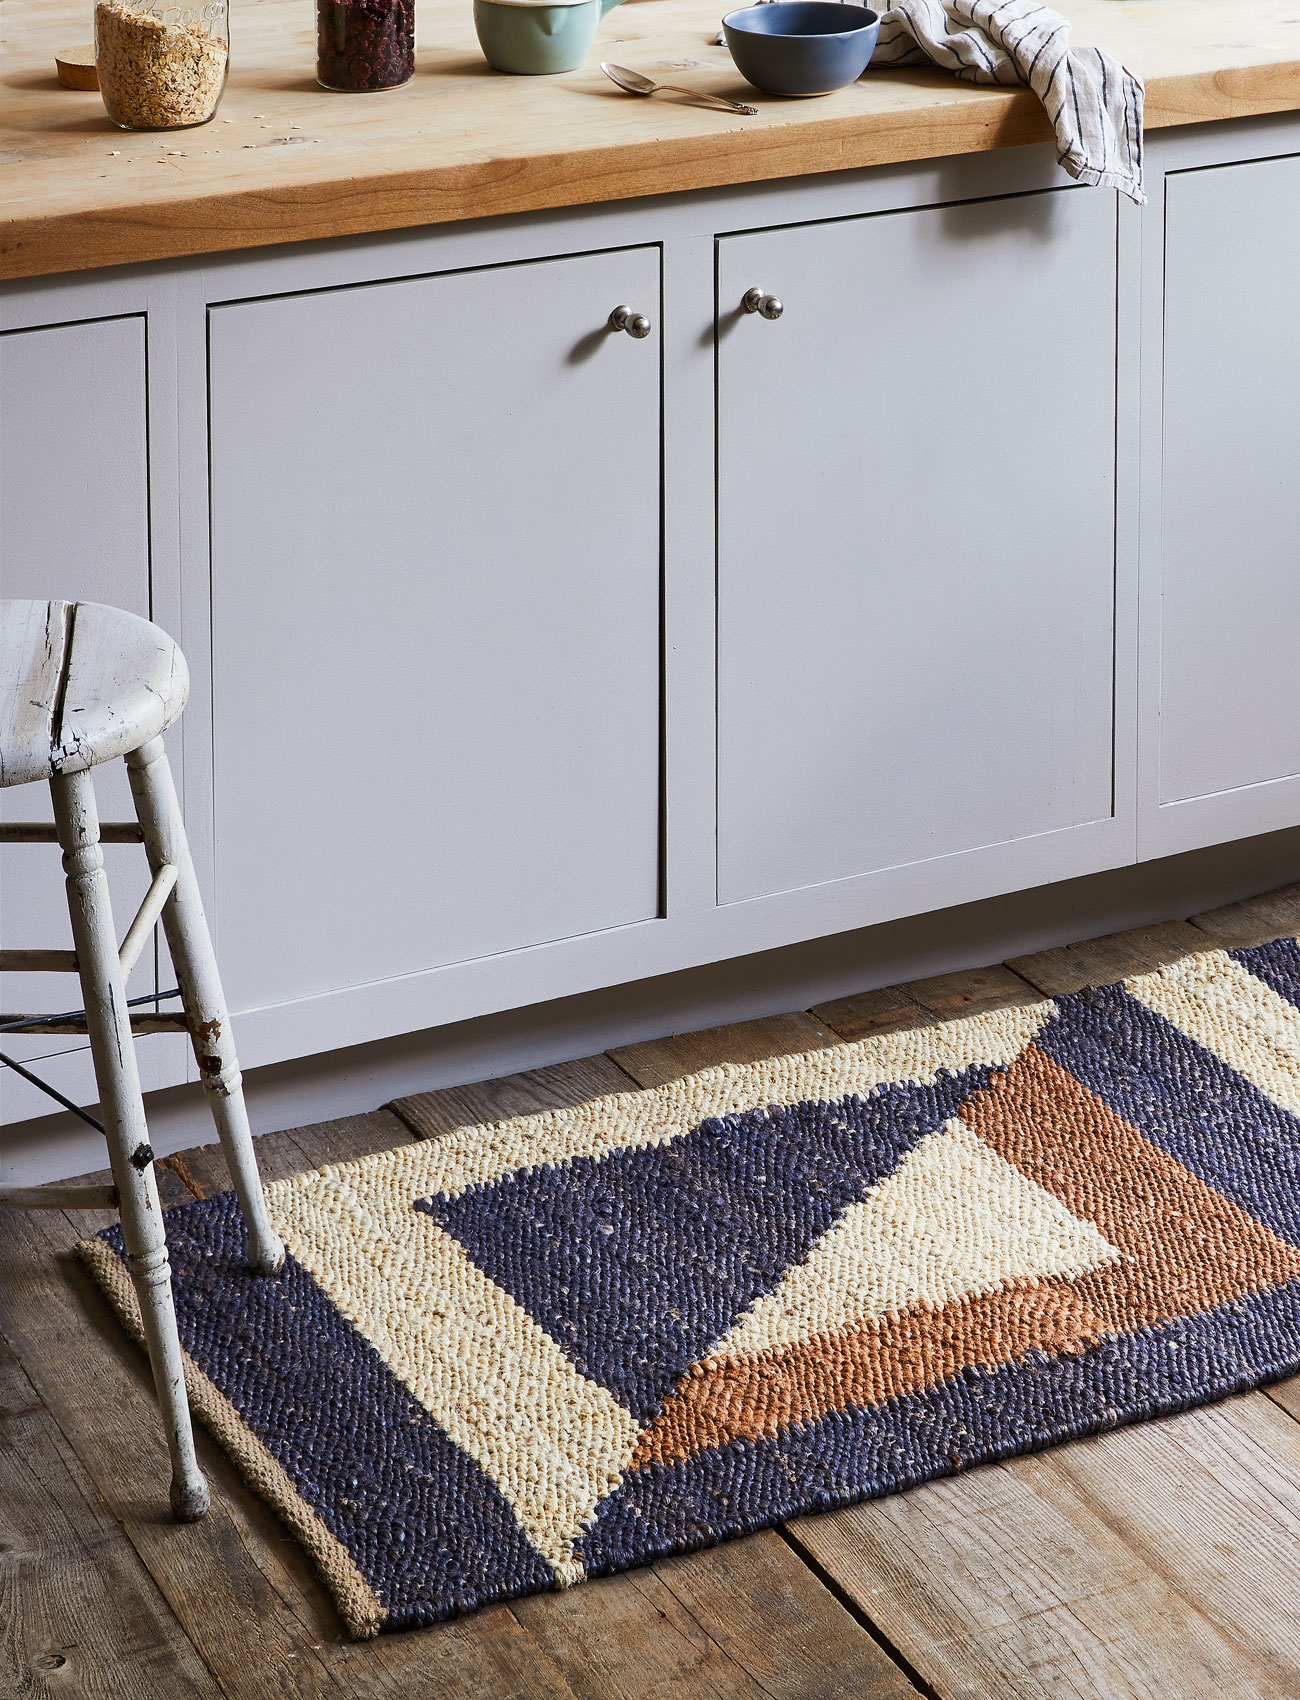 tantuvi_handwoven-hemp-runner_home_ty-mecham_food52